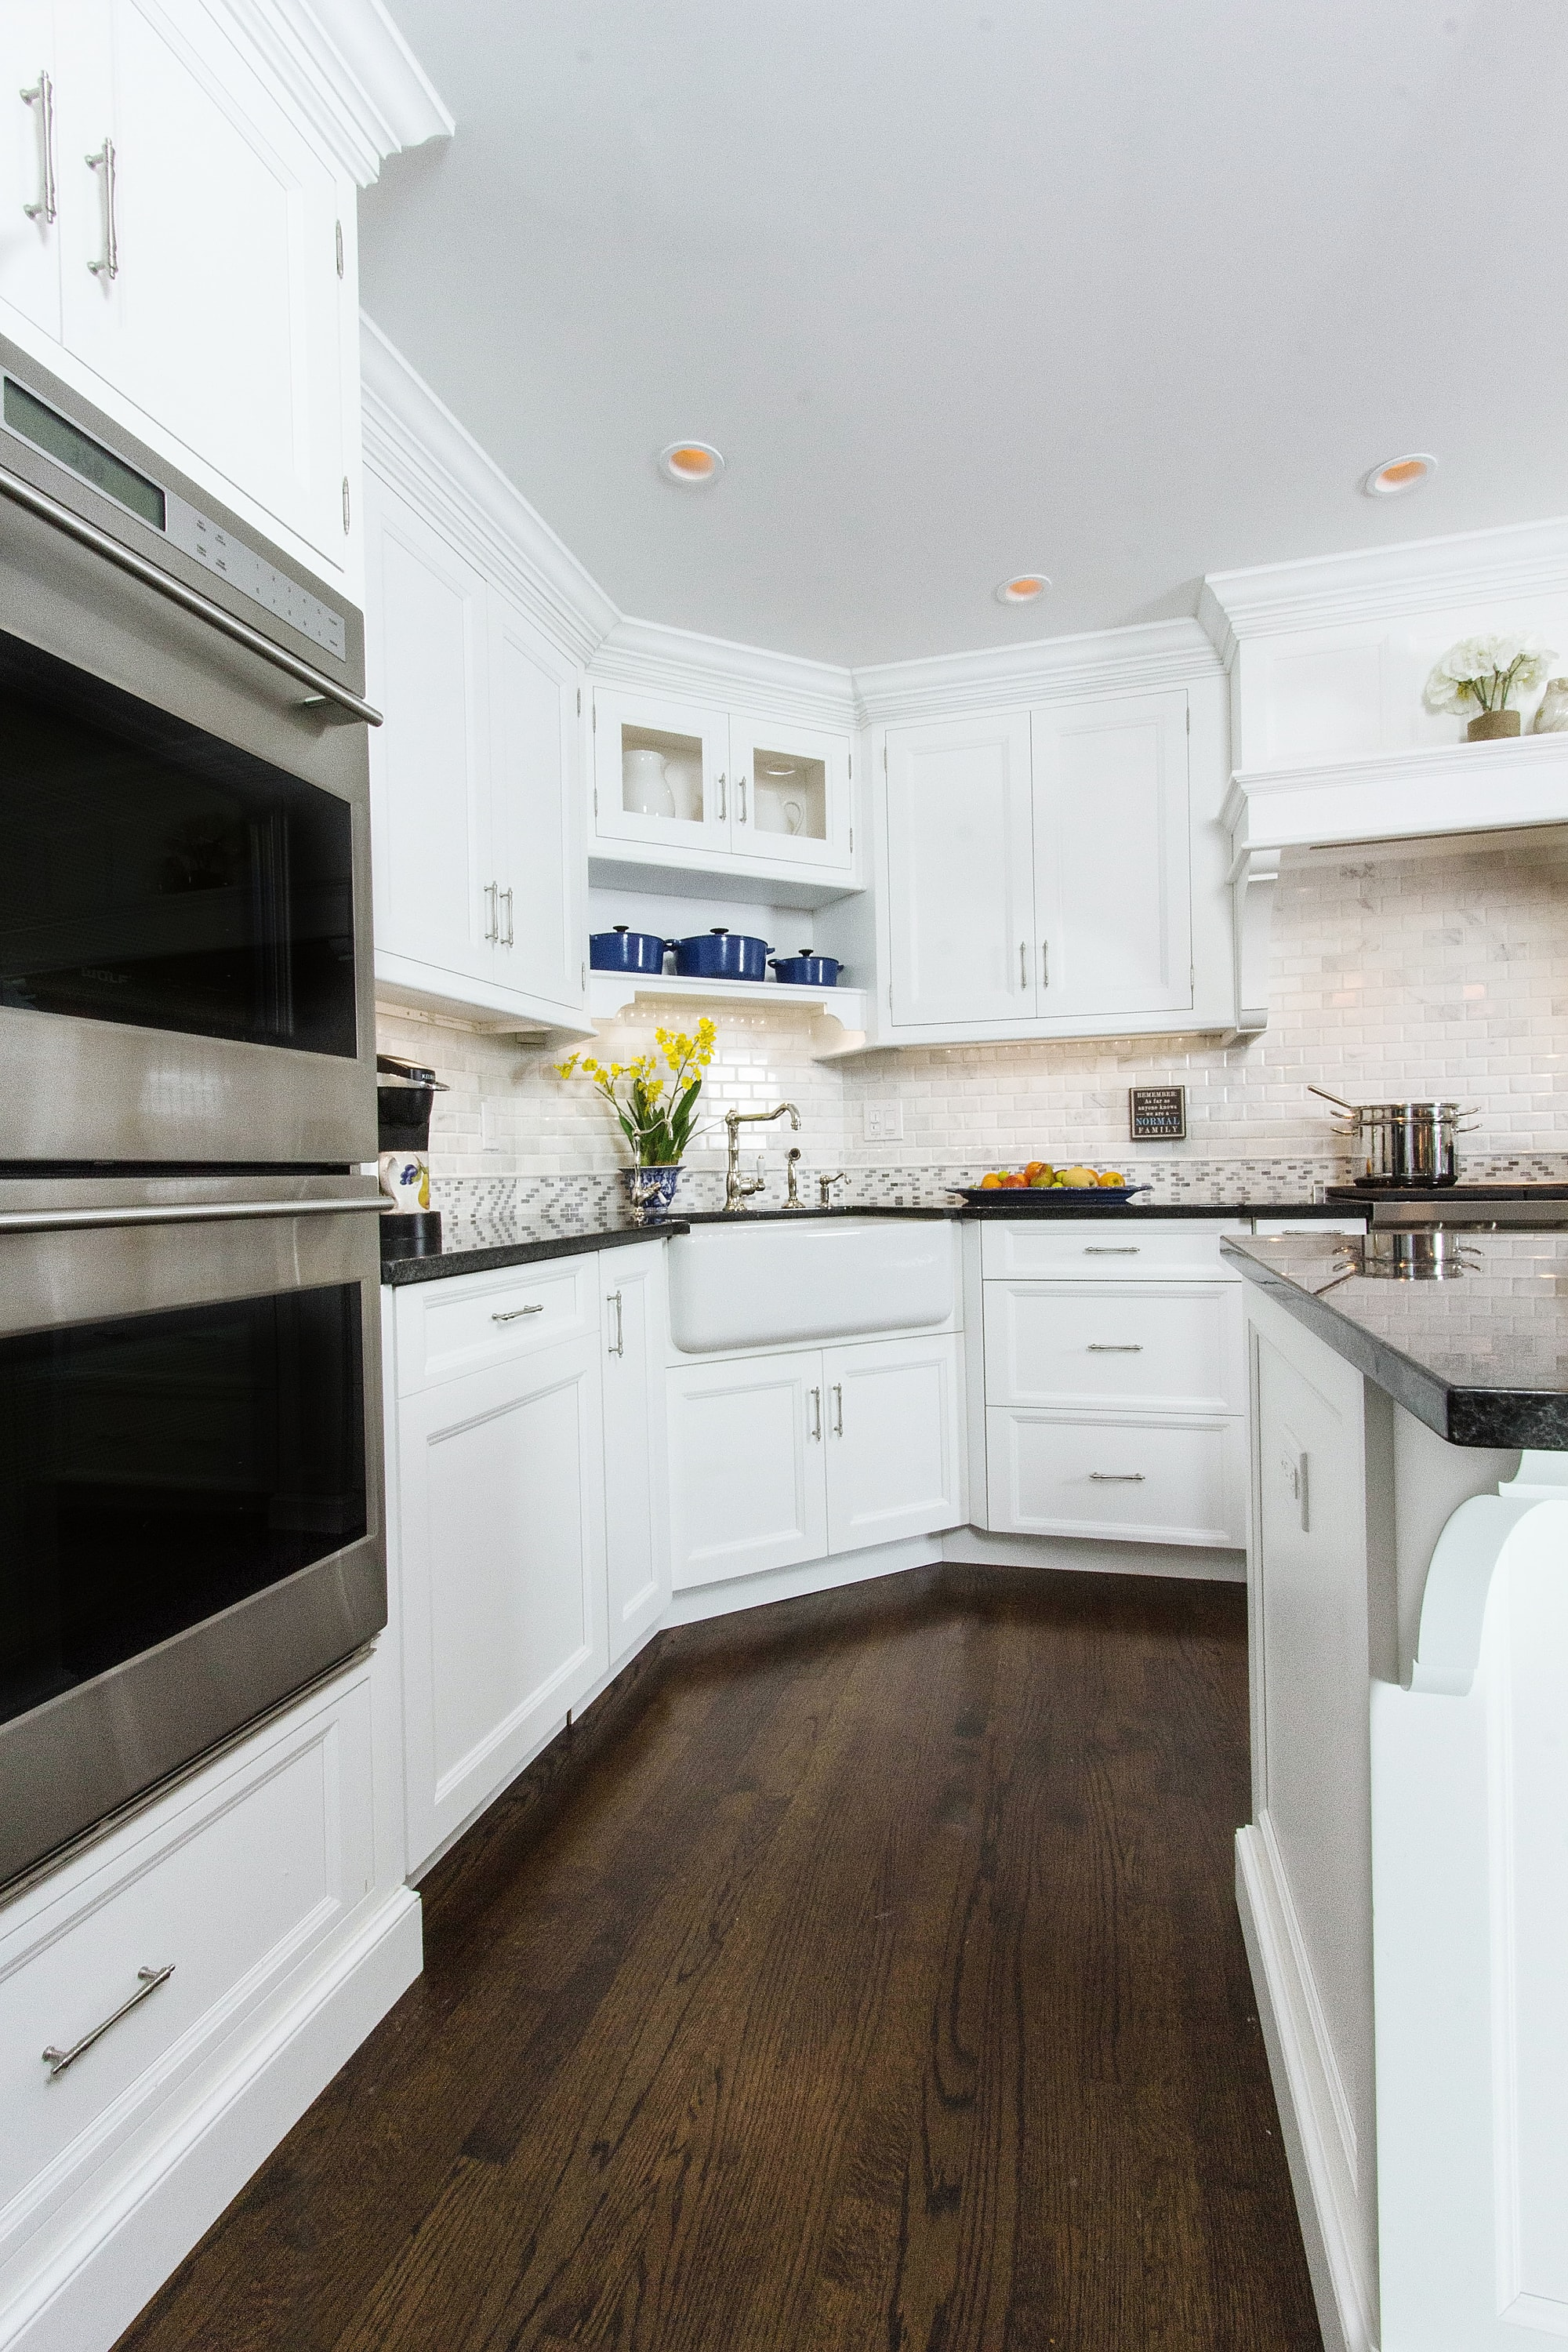 Transitional style kitchen with upper cabinets